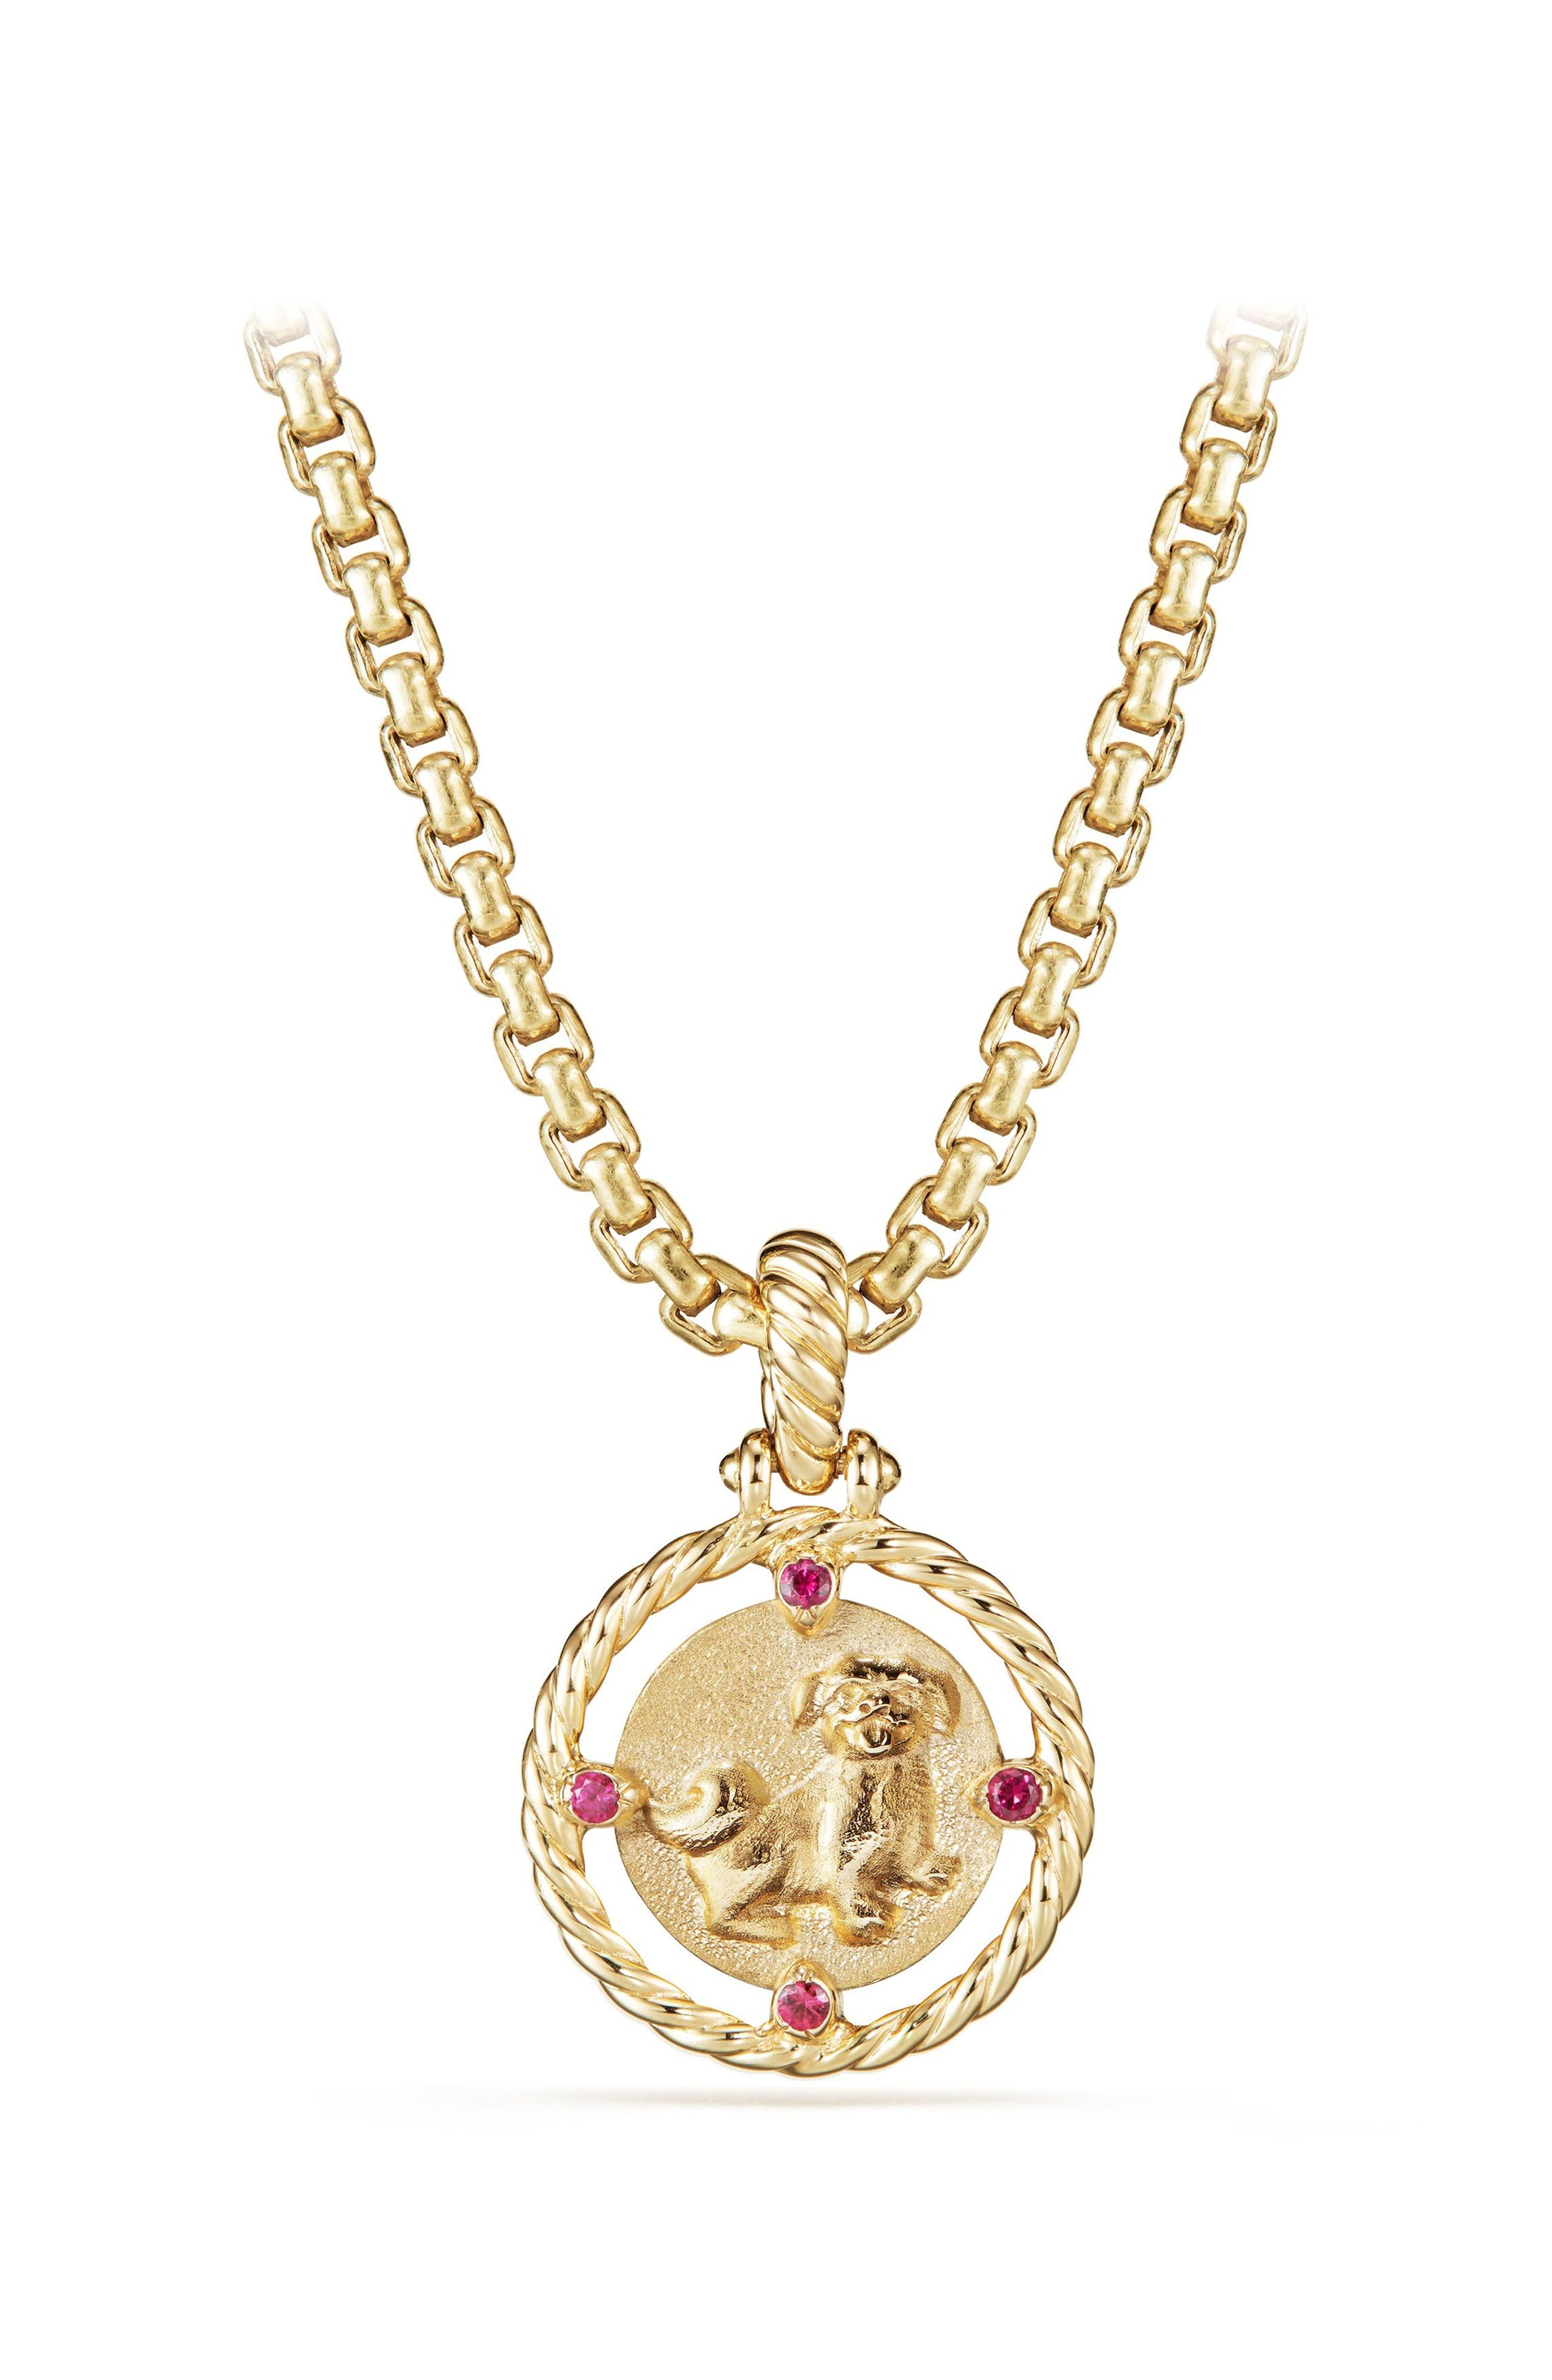 Lunar New Year Charm in 18K Gold with Rubies,                             Main thumbnail 1, color,                             YELLOW GOLD/ RUBY